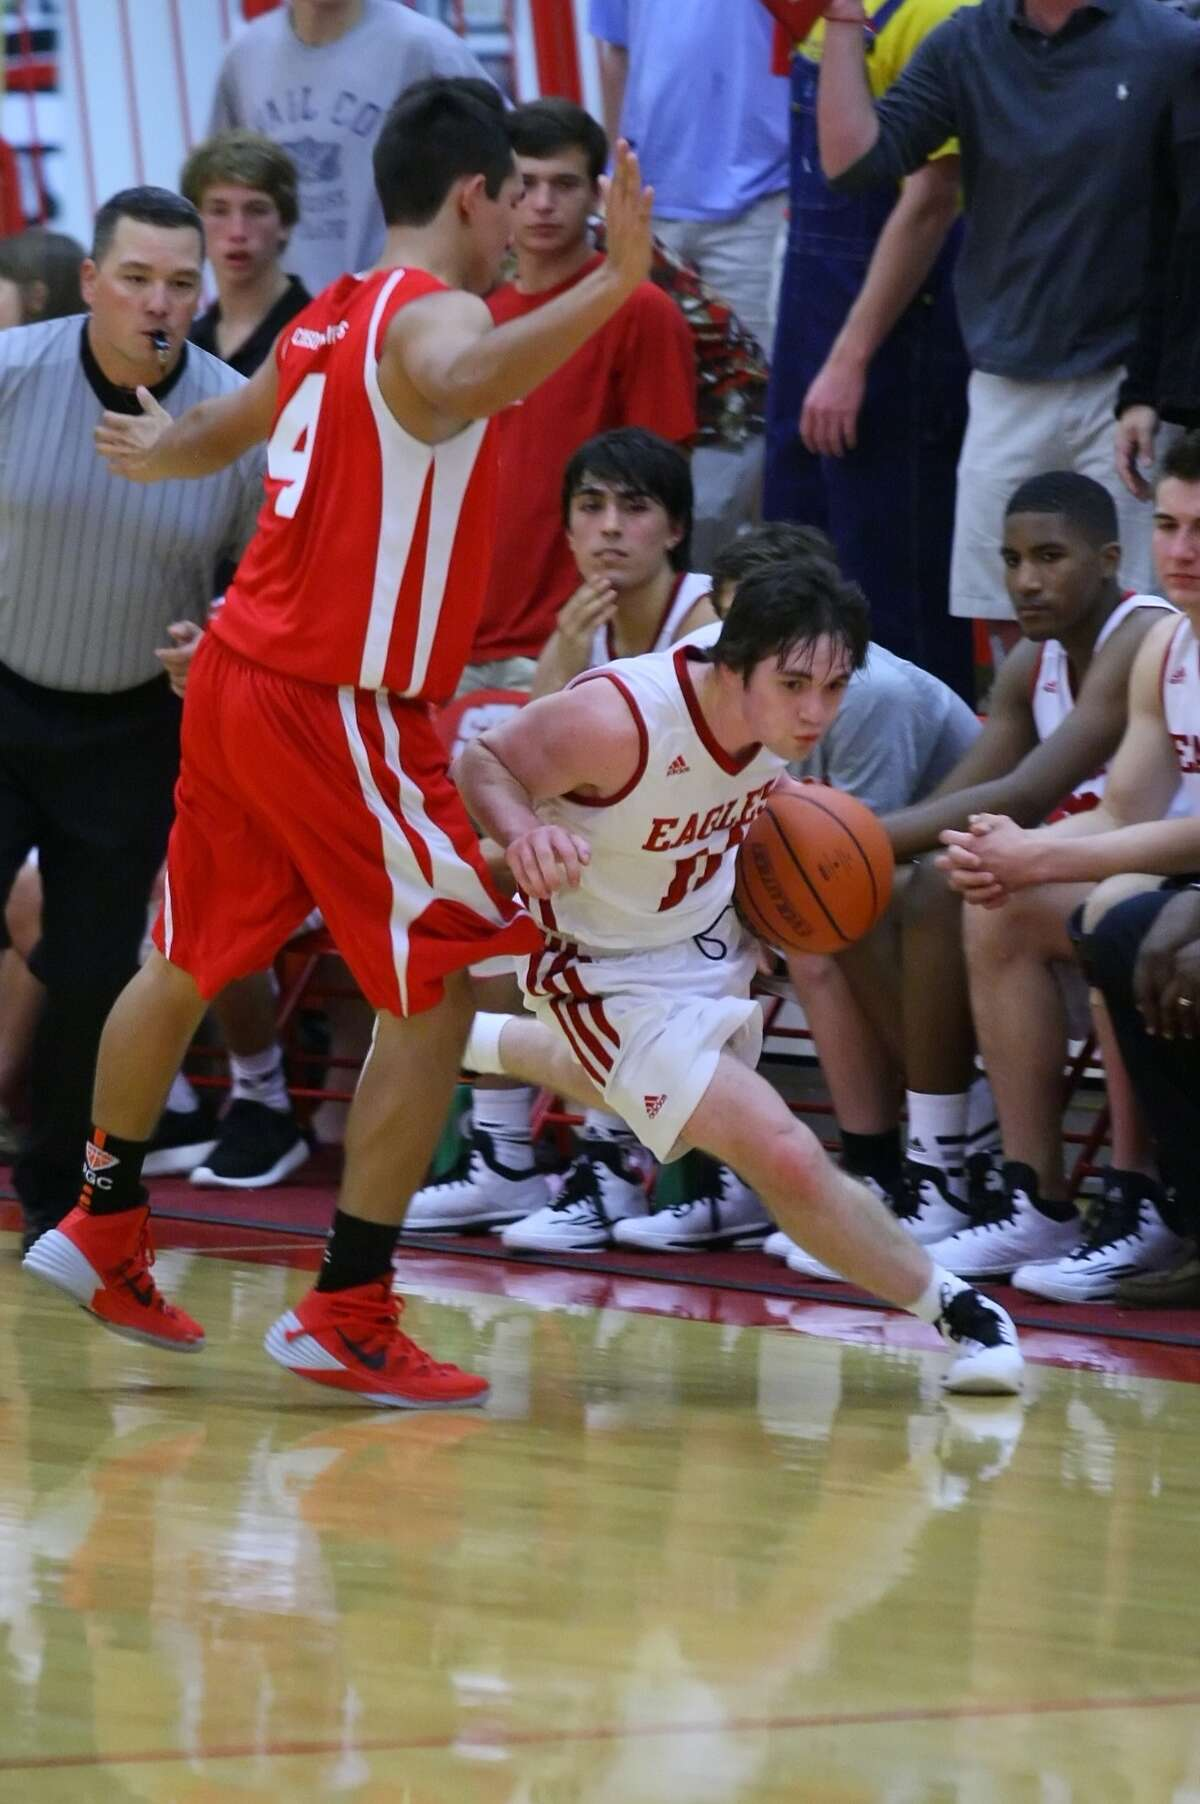 Rock Flowers of St. Thomas cuts his way up the outside as he evades the CHSM defense Tuesday night.